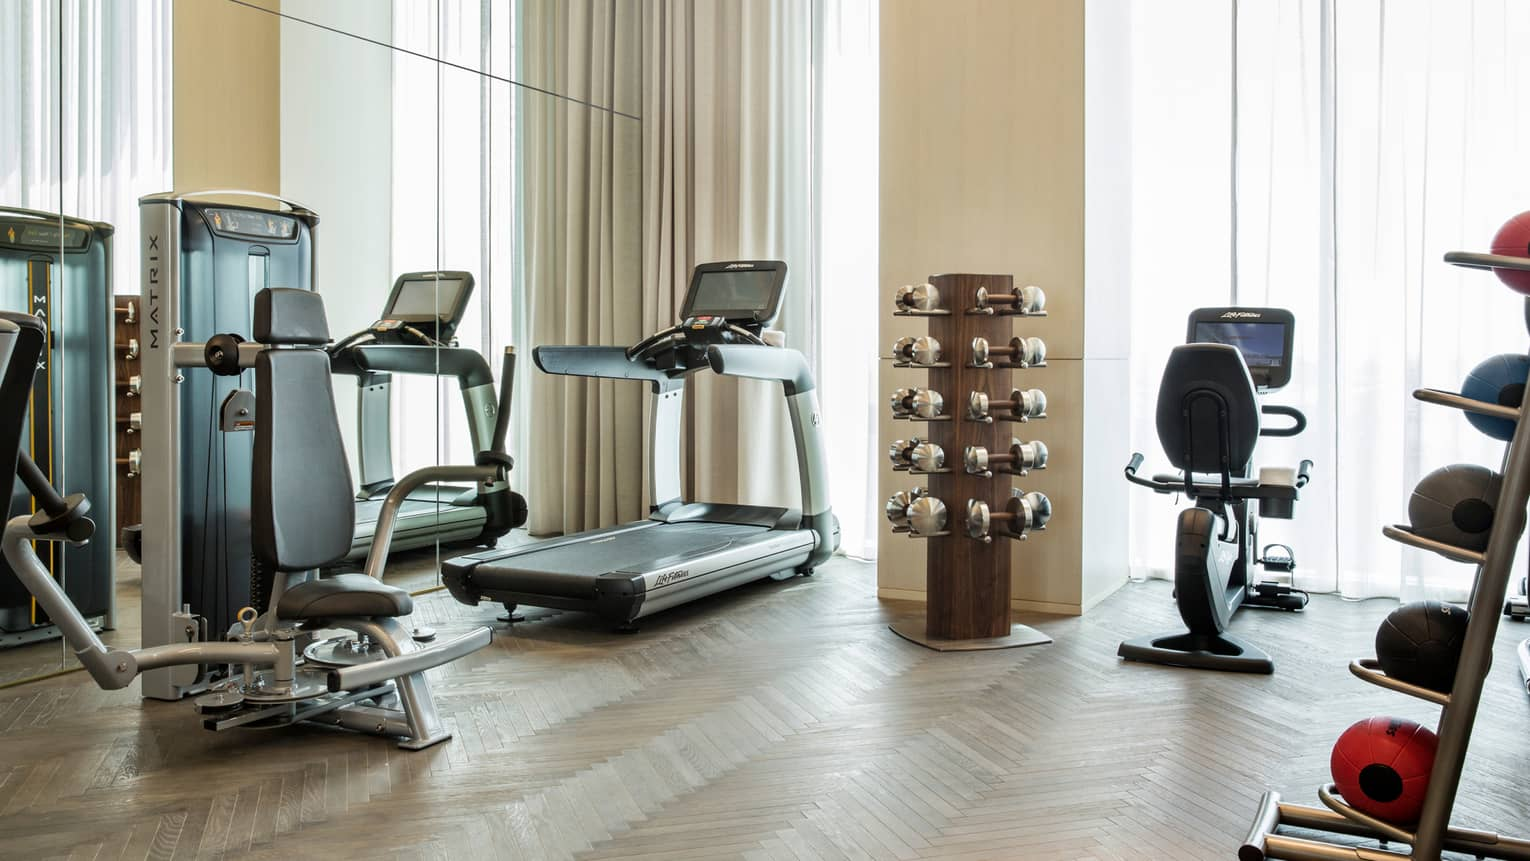 Cardio exercise machines, rack of hand weights near windows with long curtains in fitness centre